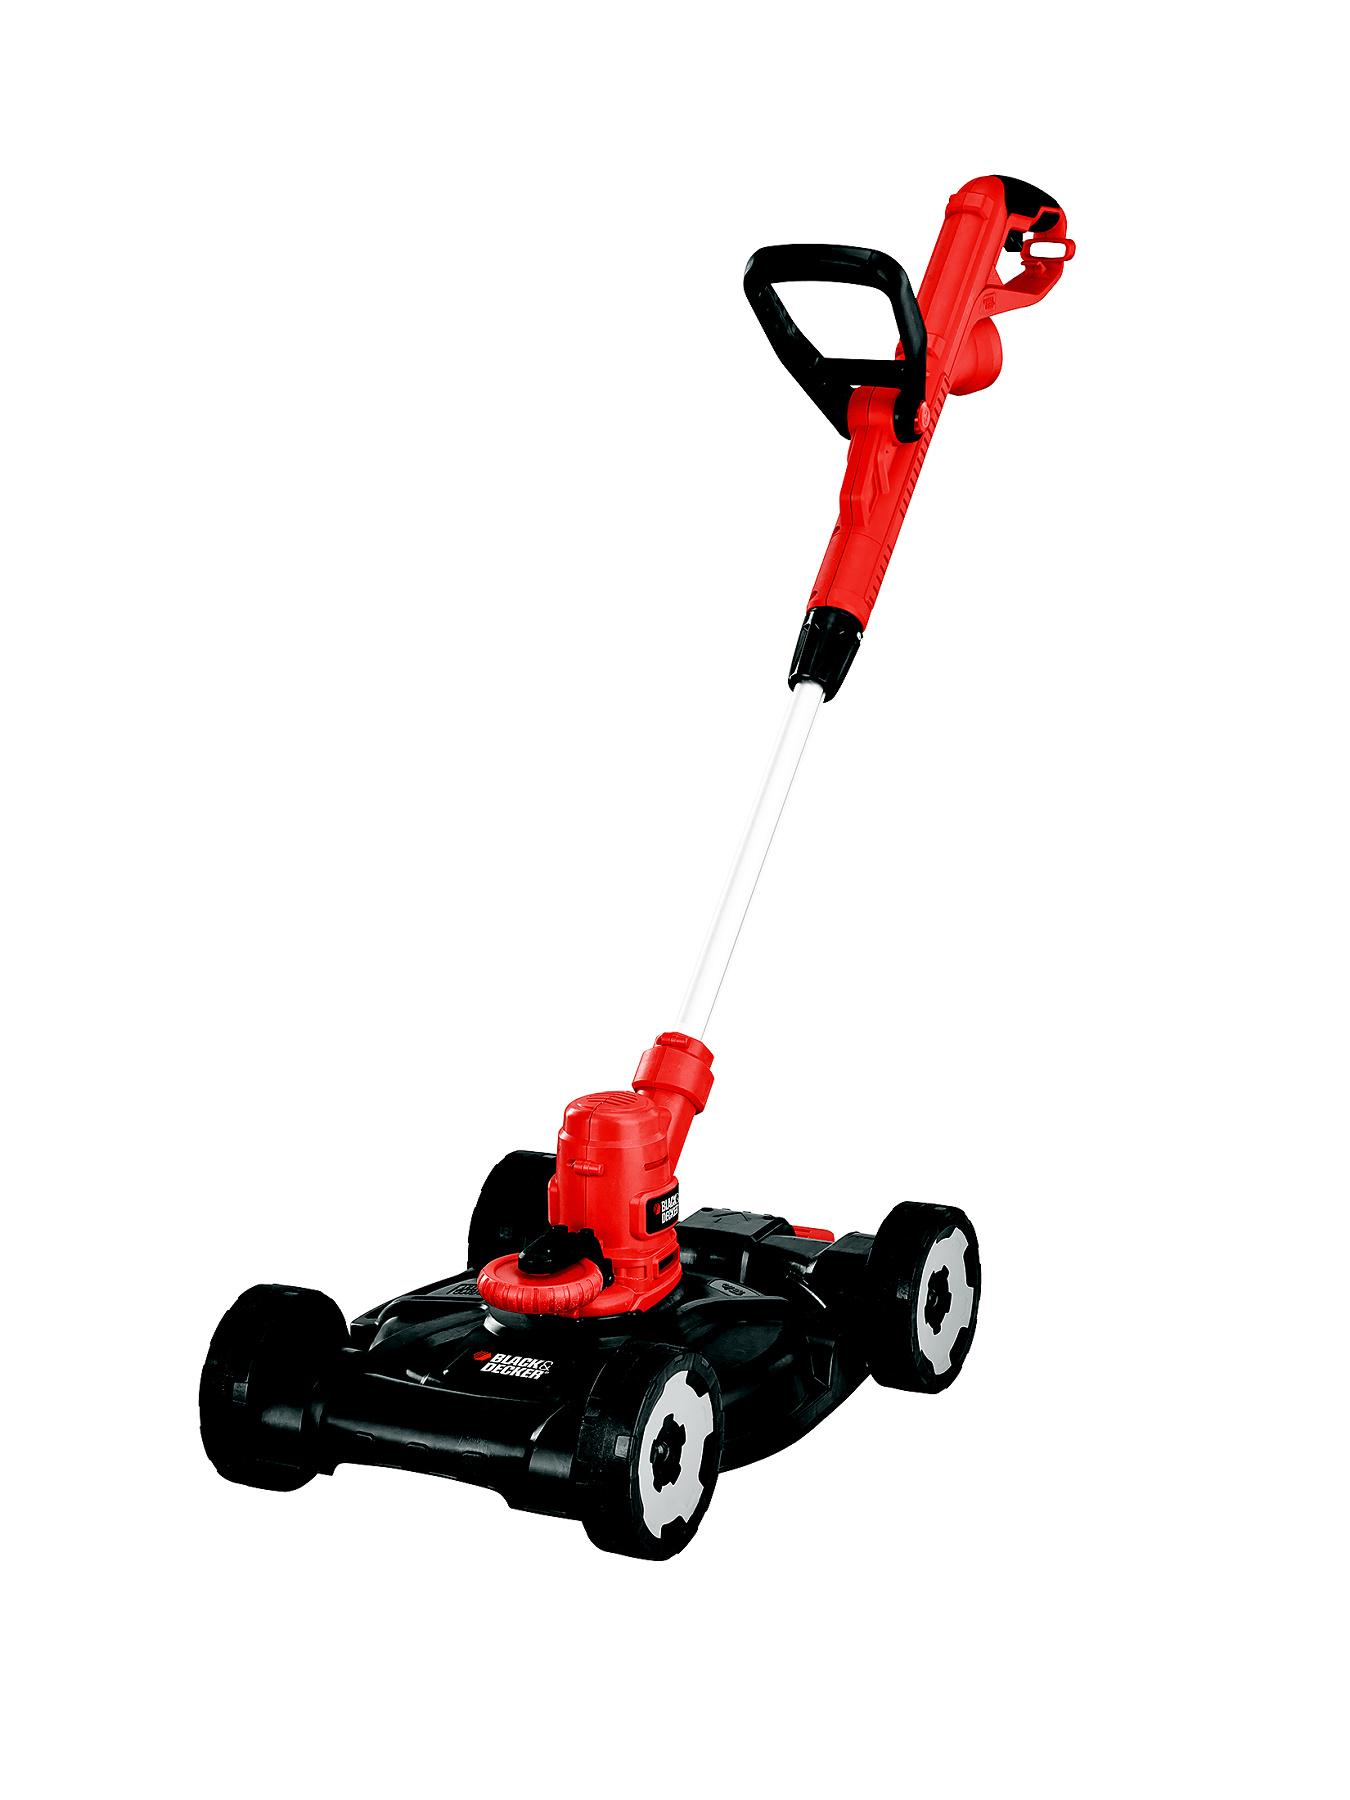 STC1820CMGB 18V Lithium Ion Strimmer with Mower Deck